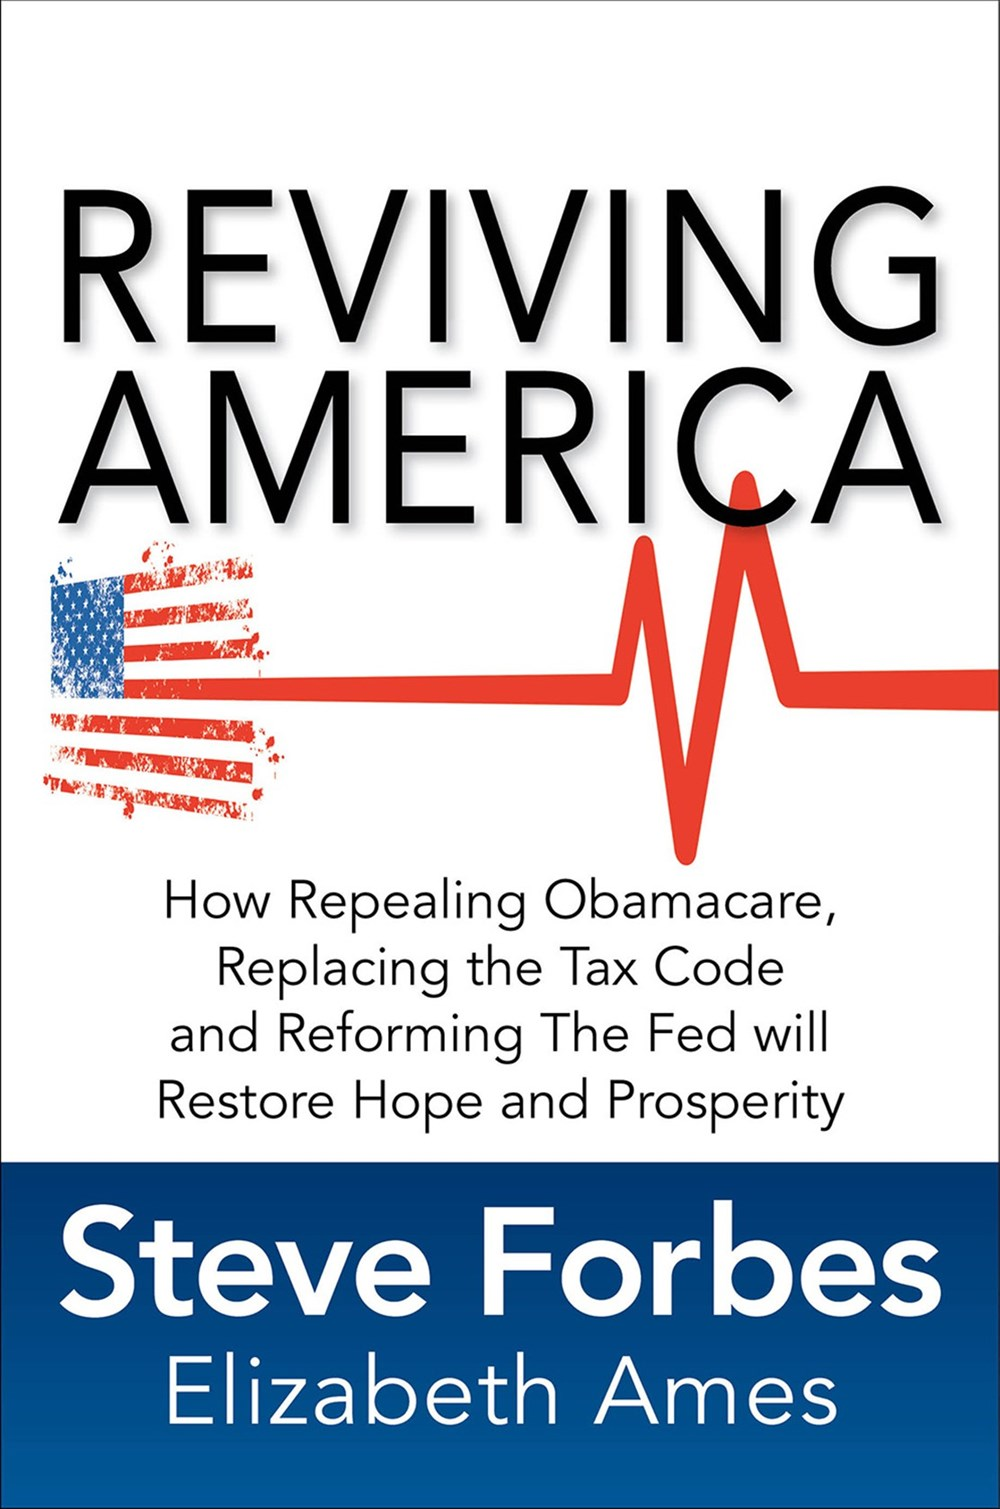 Reviving America How Repealing Obamacare, Replacing the Tax Code and Reforming the Fed Will Restore